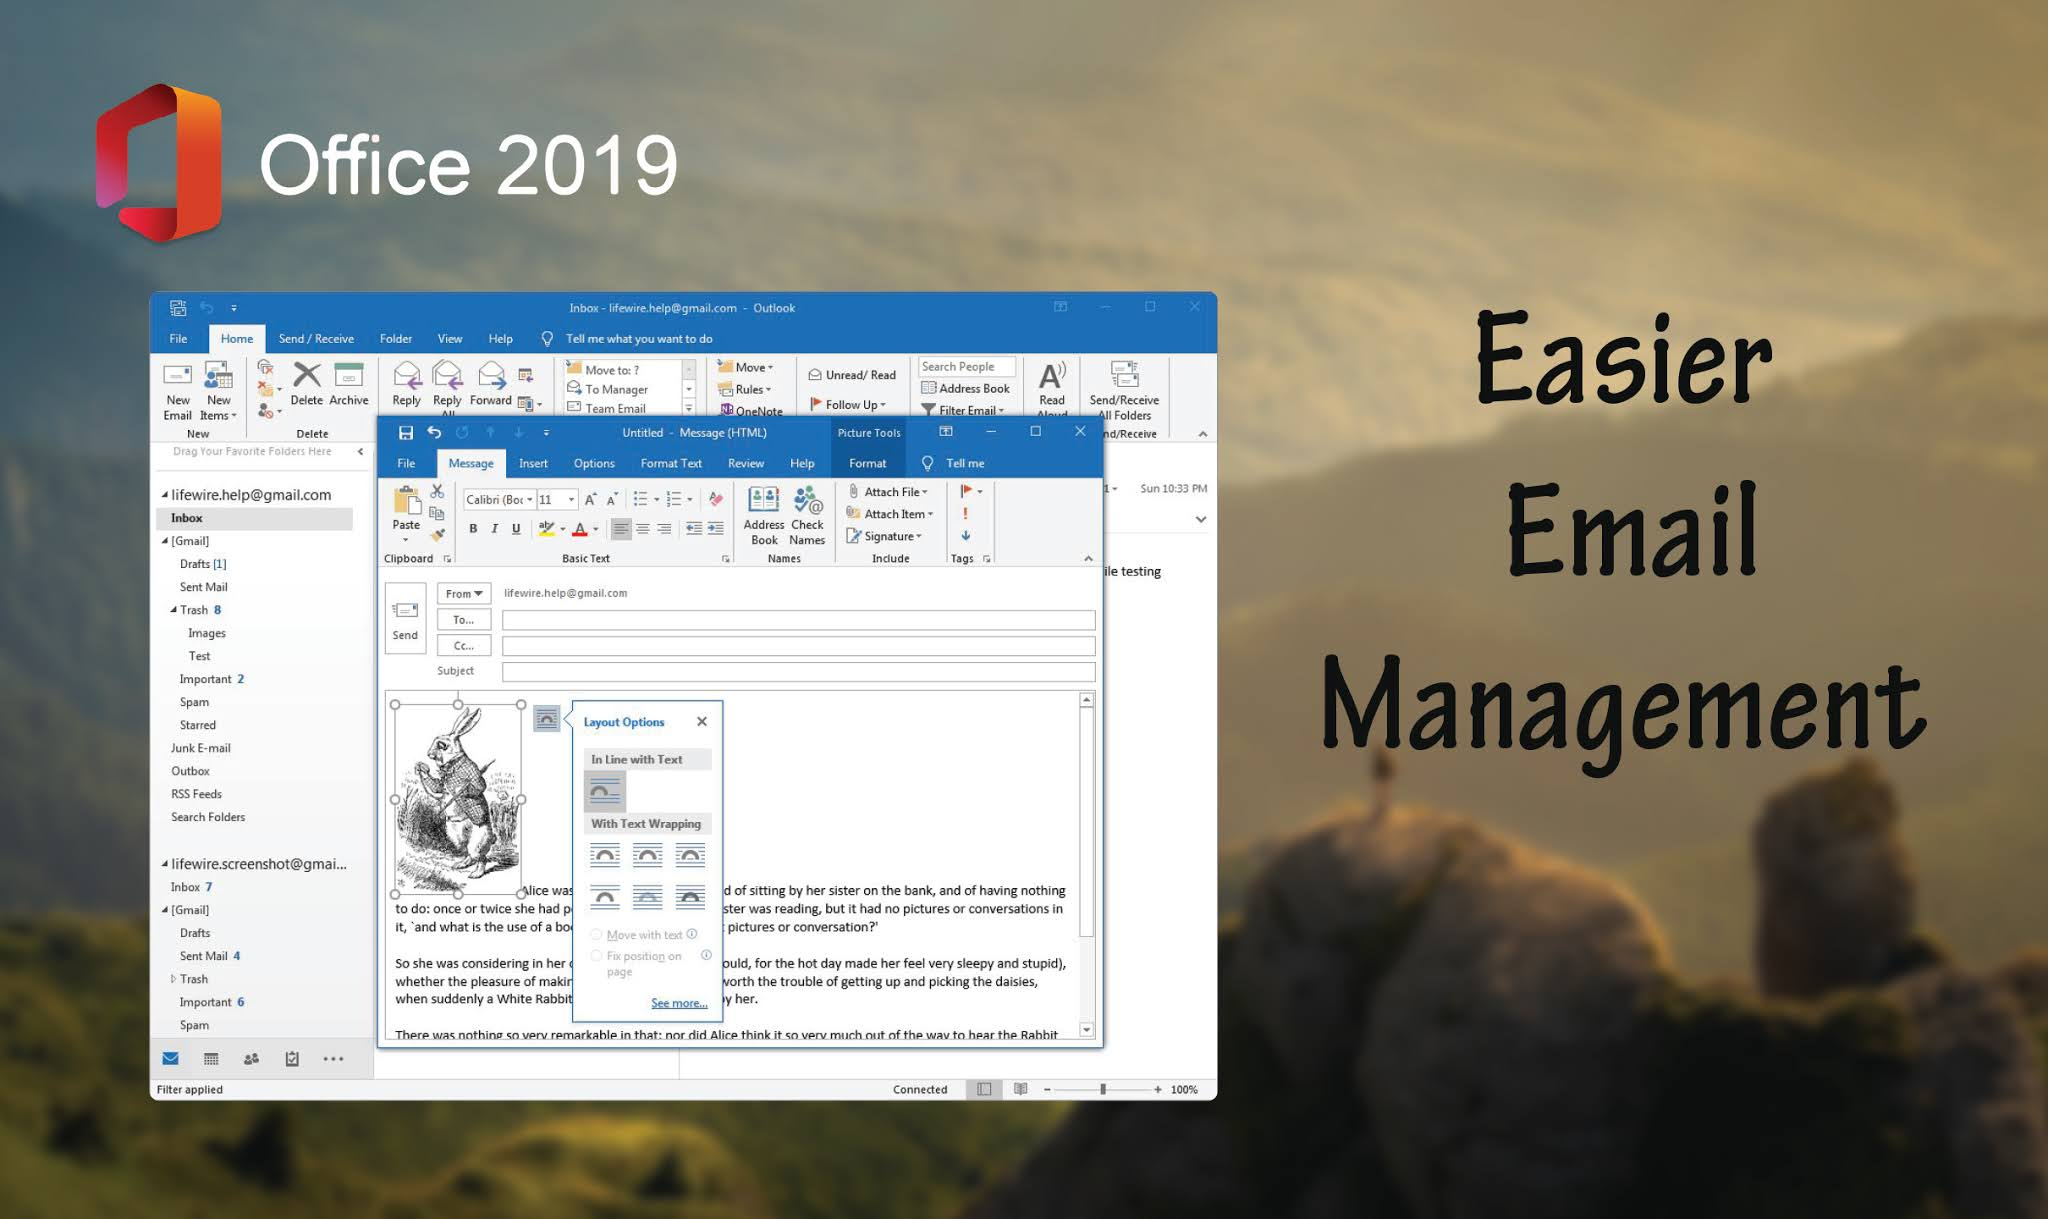 Outlook - Office 2019